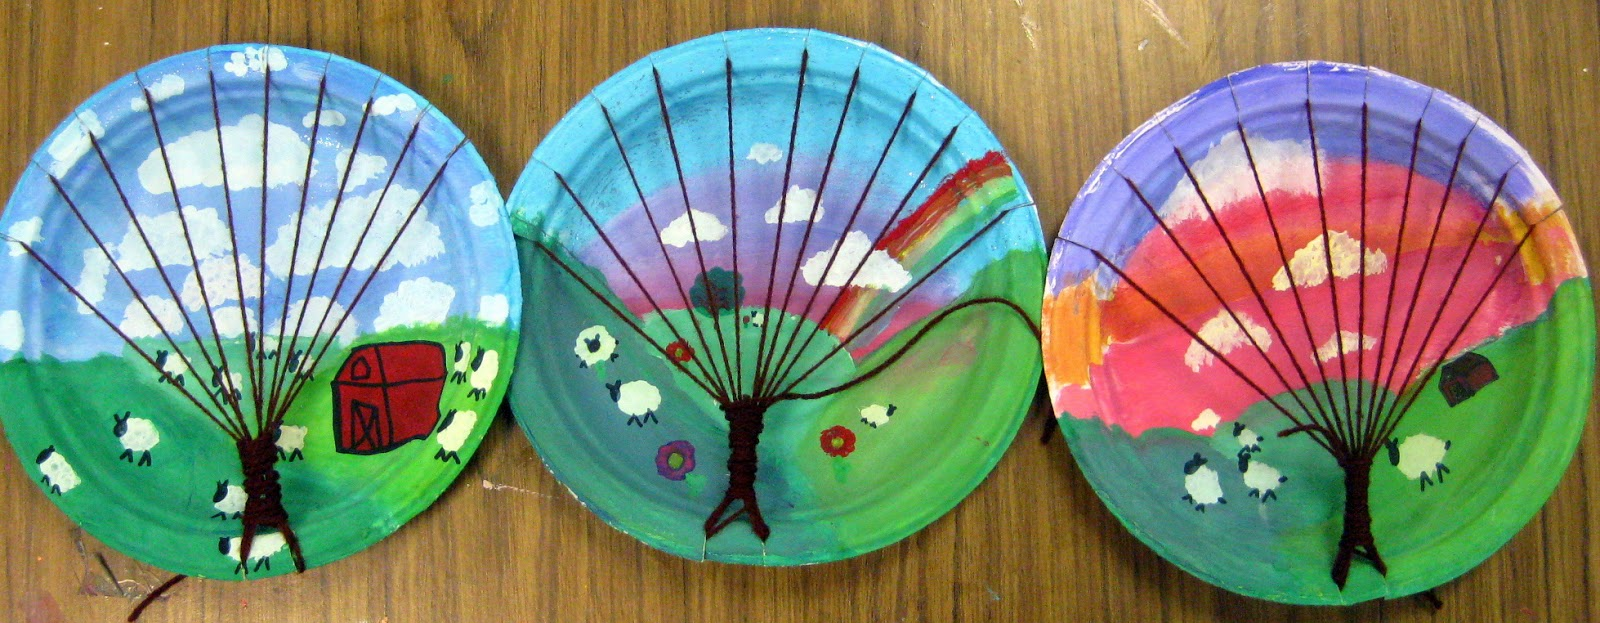 sc 1 st  Cassie Stephens & Cassie Stephens: In the Art Room: Tree Weaving with Third Grade